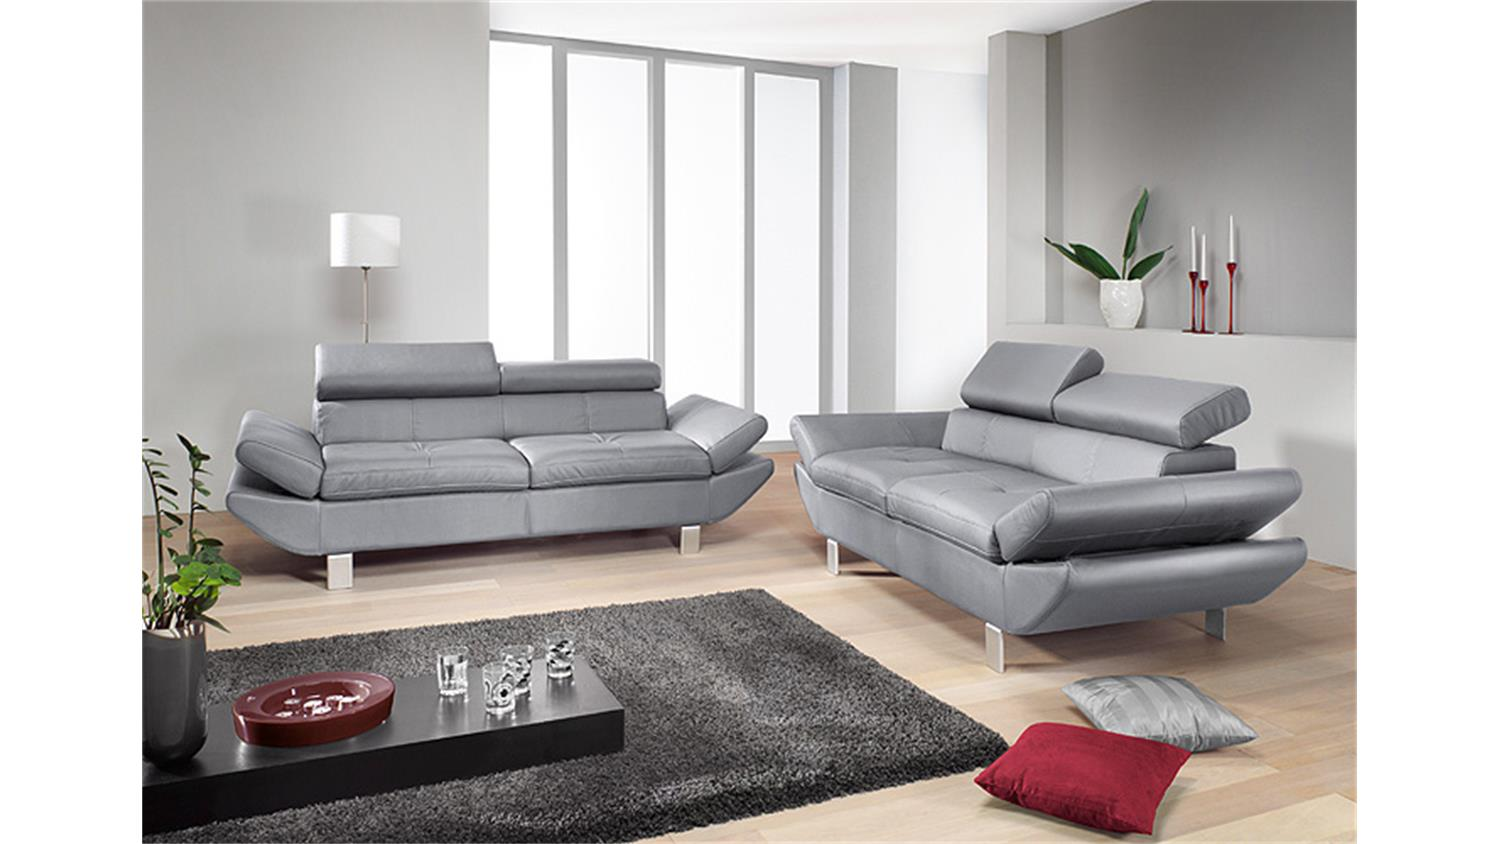 sofa garnitur carrier polsterm bel mit relaxfunktion in grau. Black Bedroom Furniture Sets. Home Design Ideas